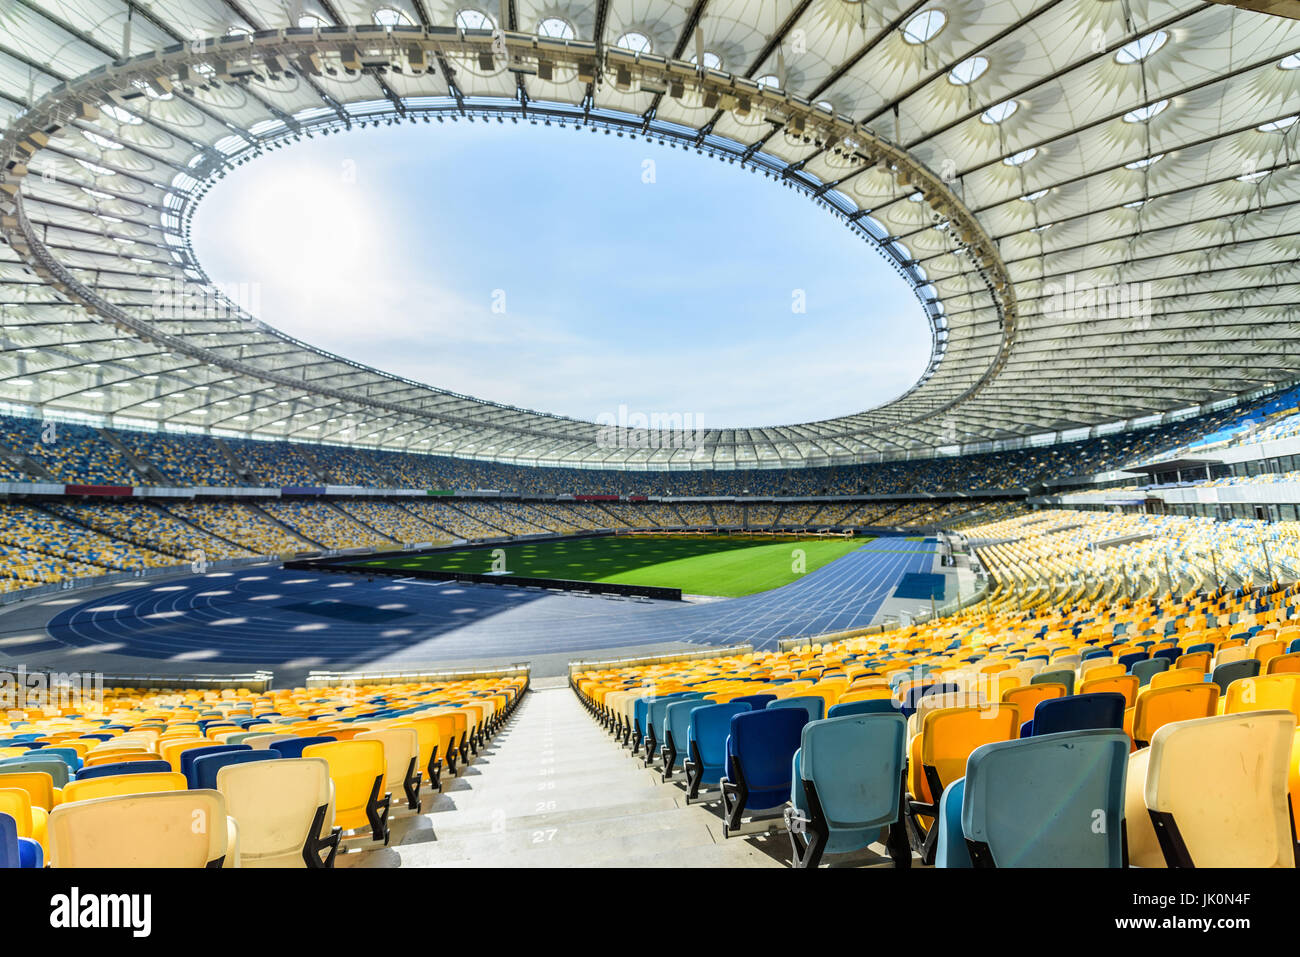 rows of yellow and blue stadium seats on soccer field stadium - Stock Image